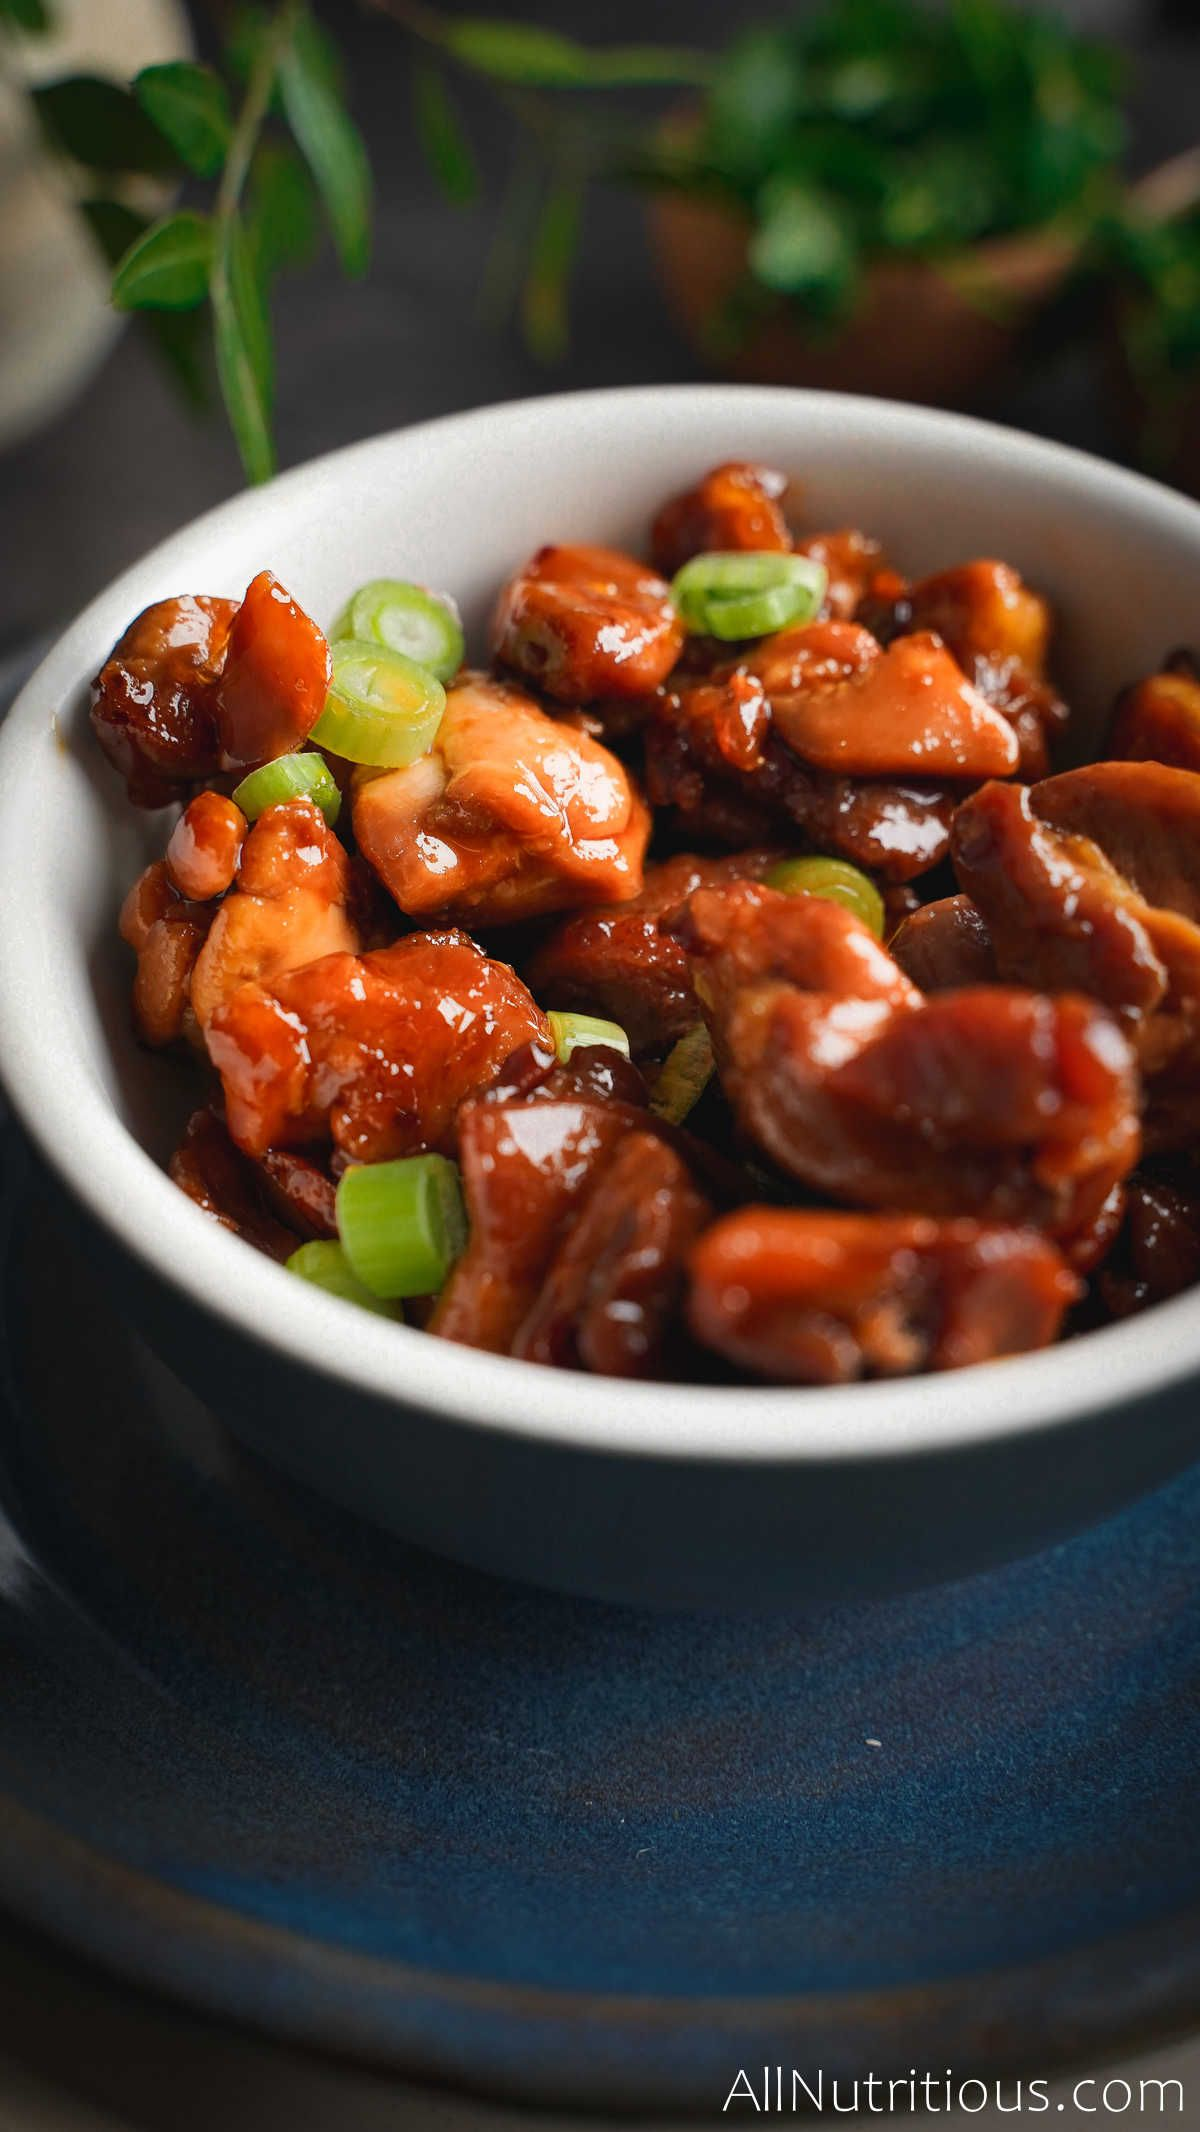 chicken in bowl with green onions